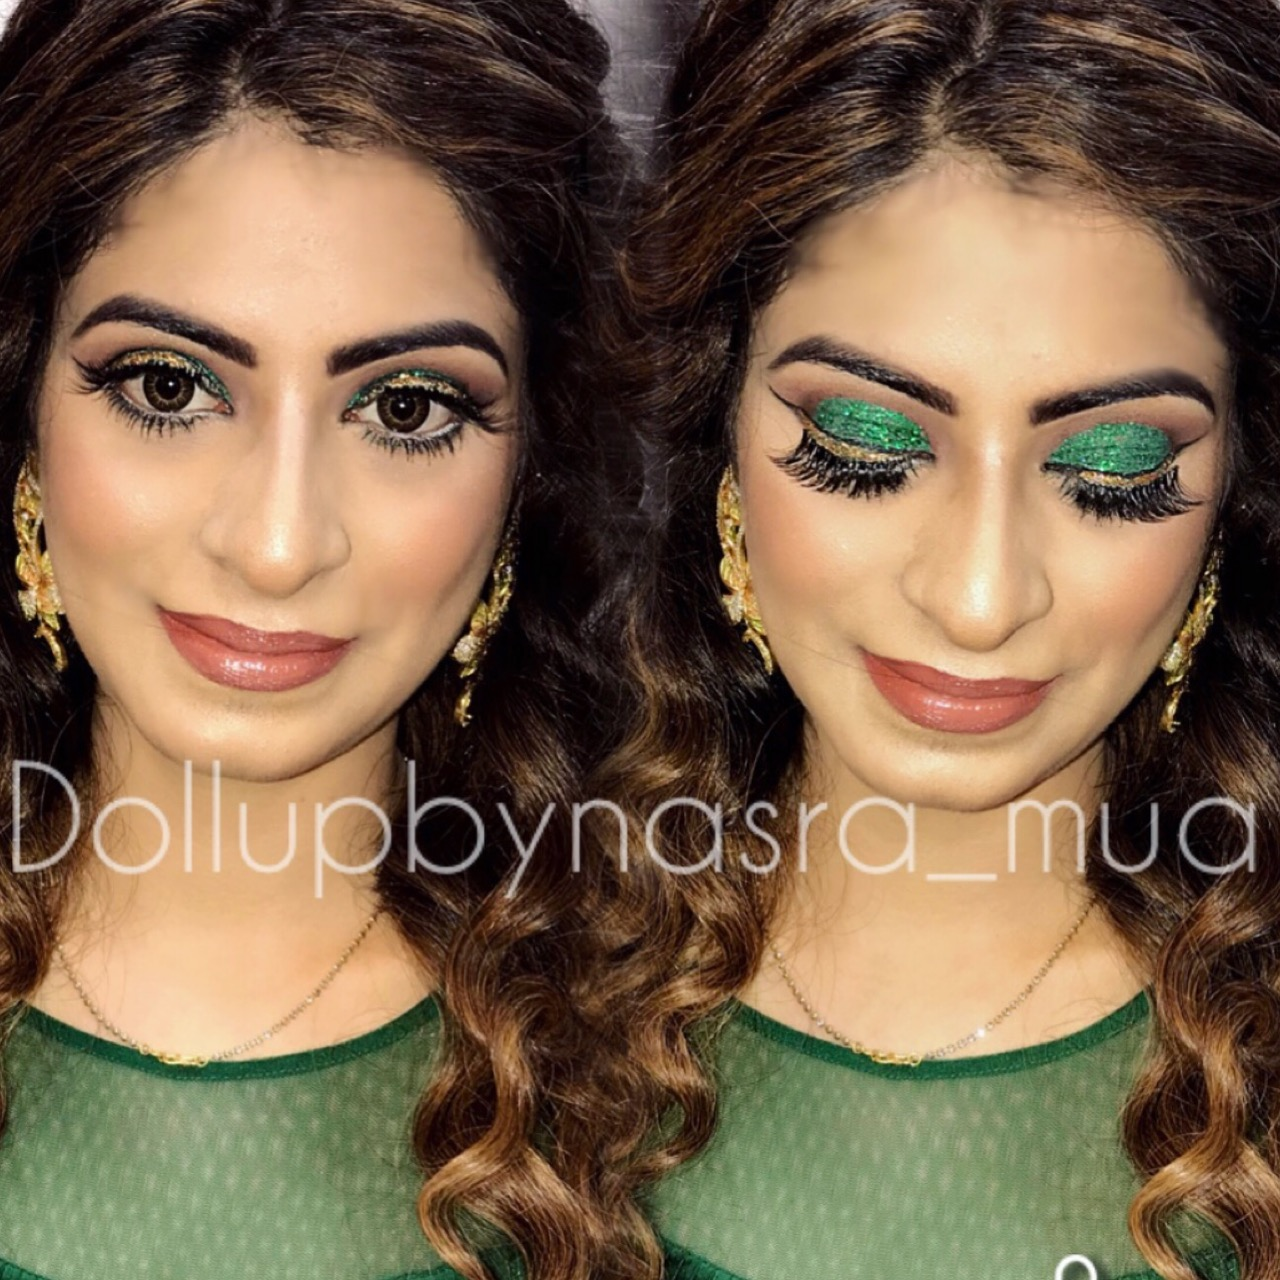 dollup-by-nasra-makeup-artist-mumbai